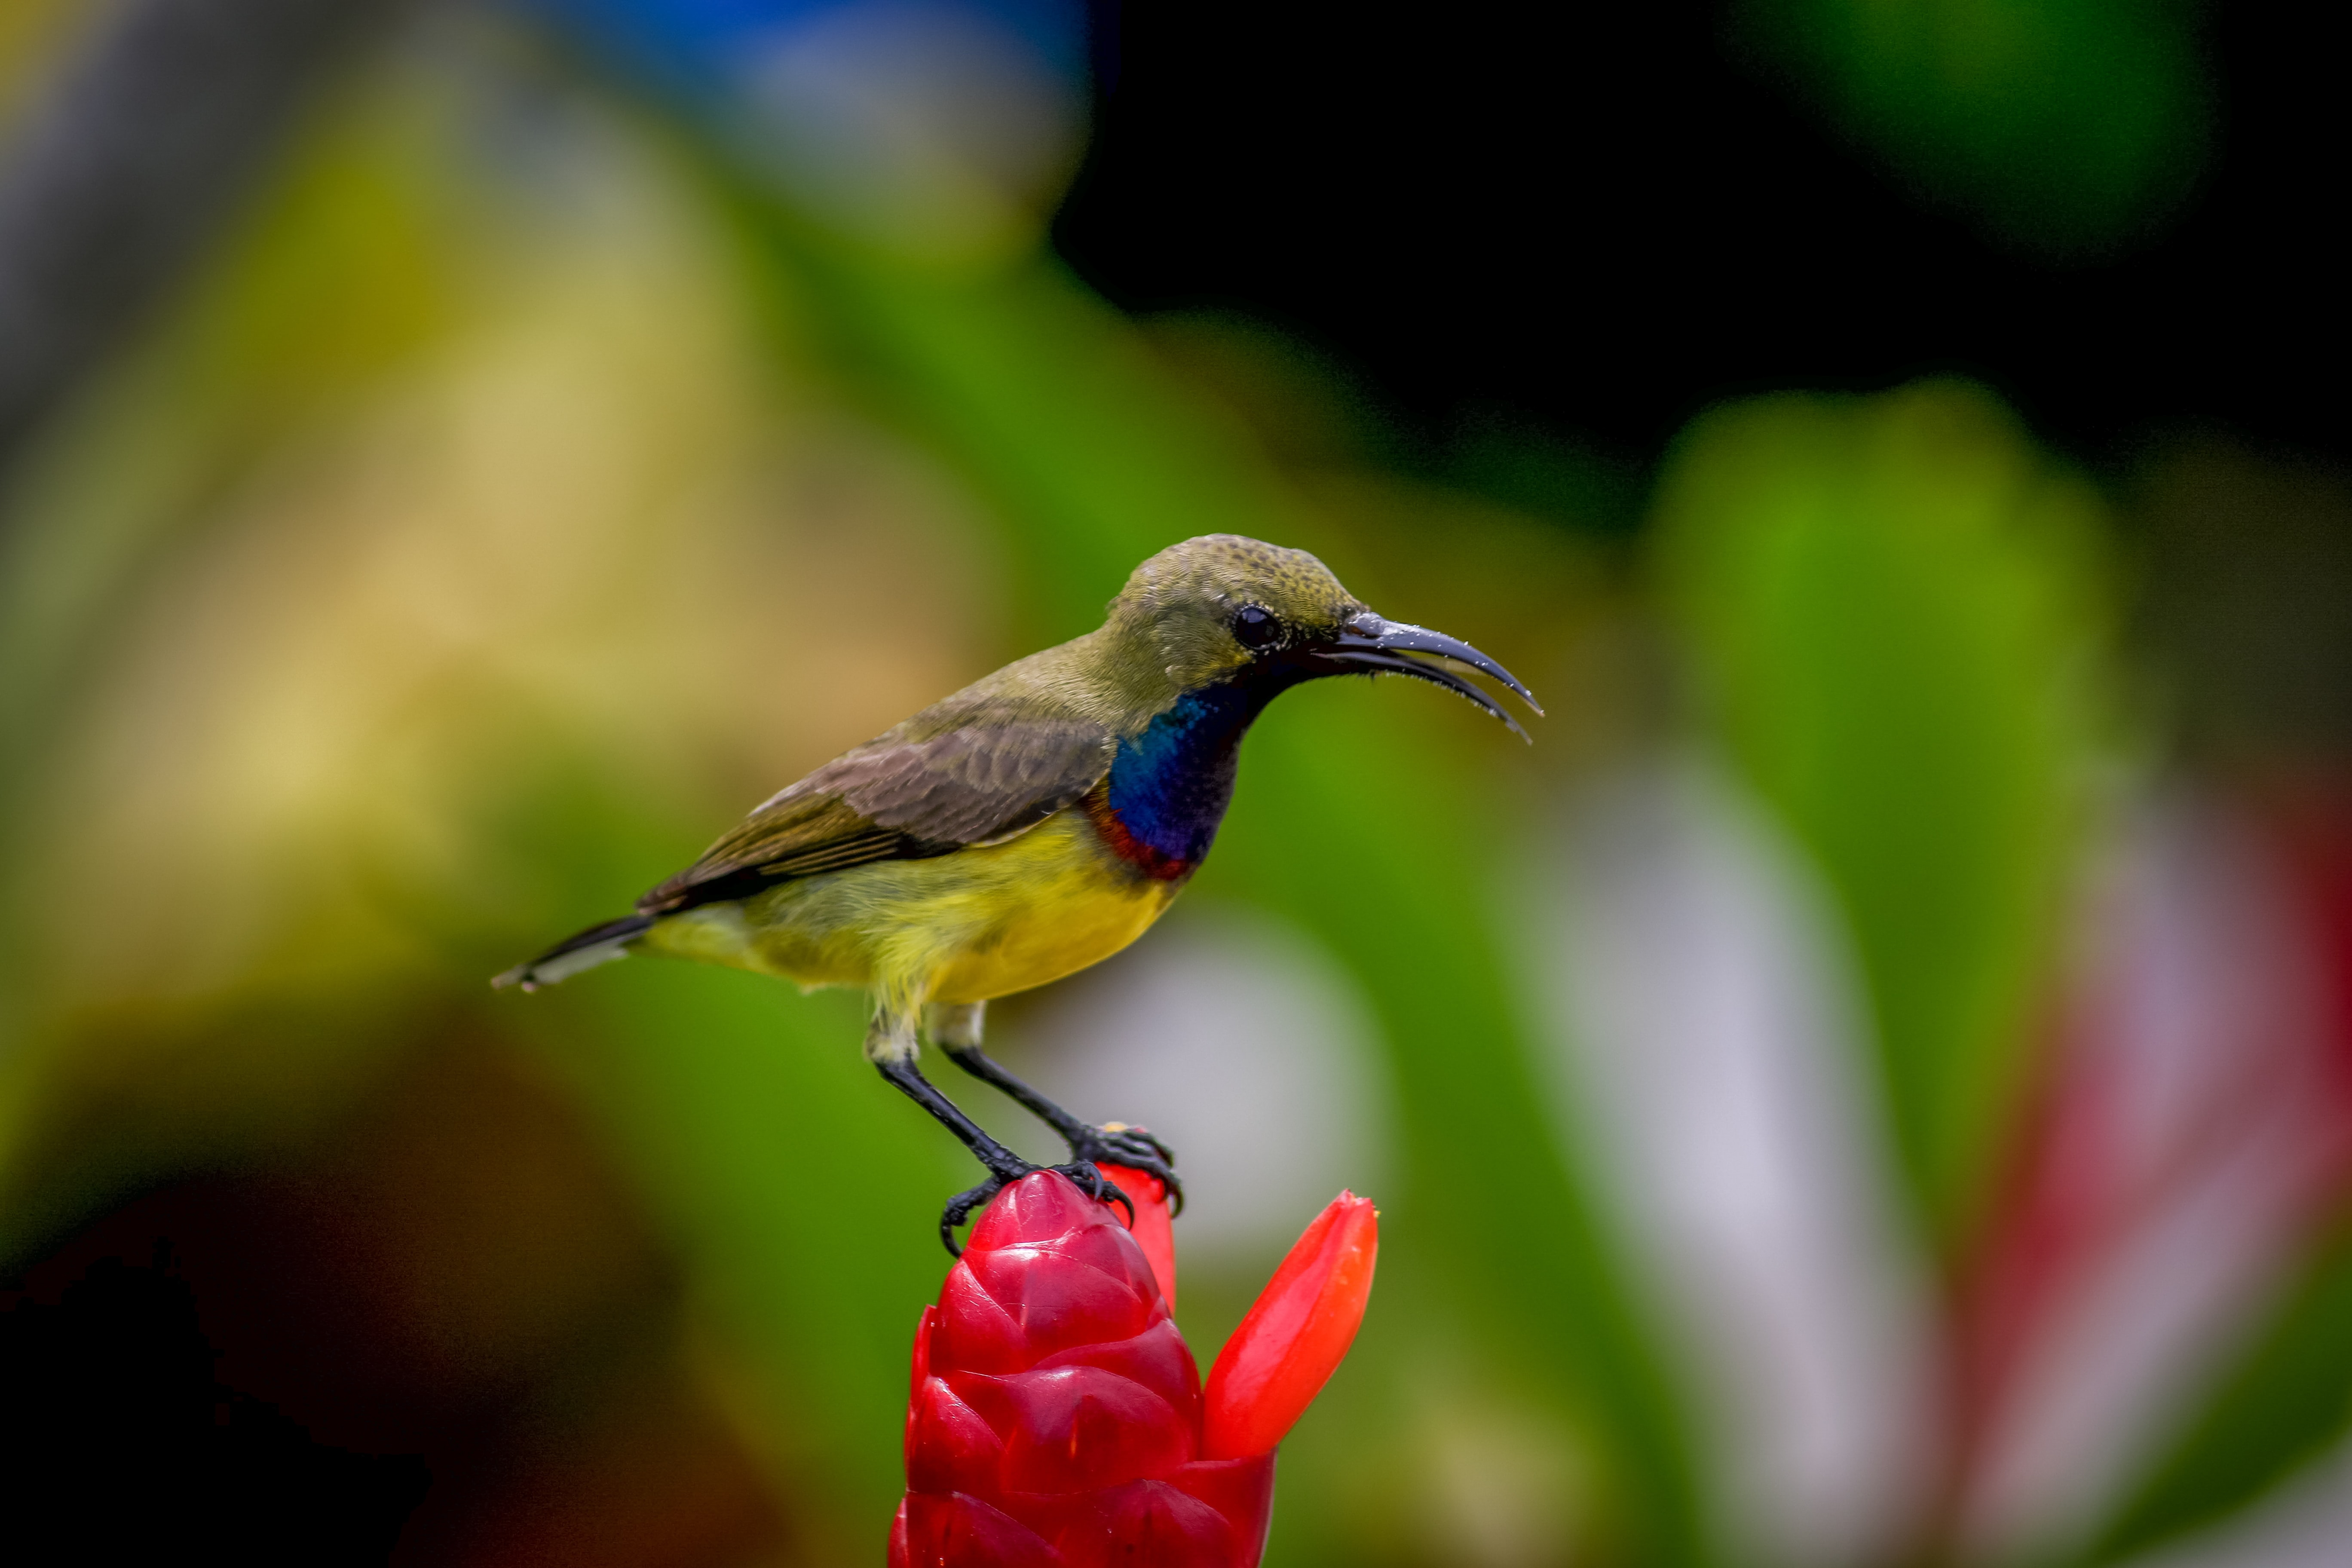 shallow focus photography of bird on red flower